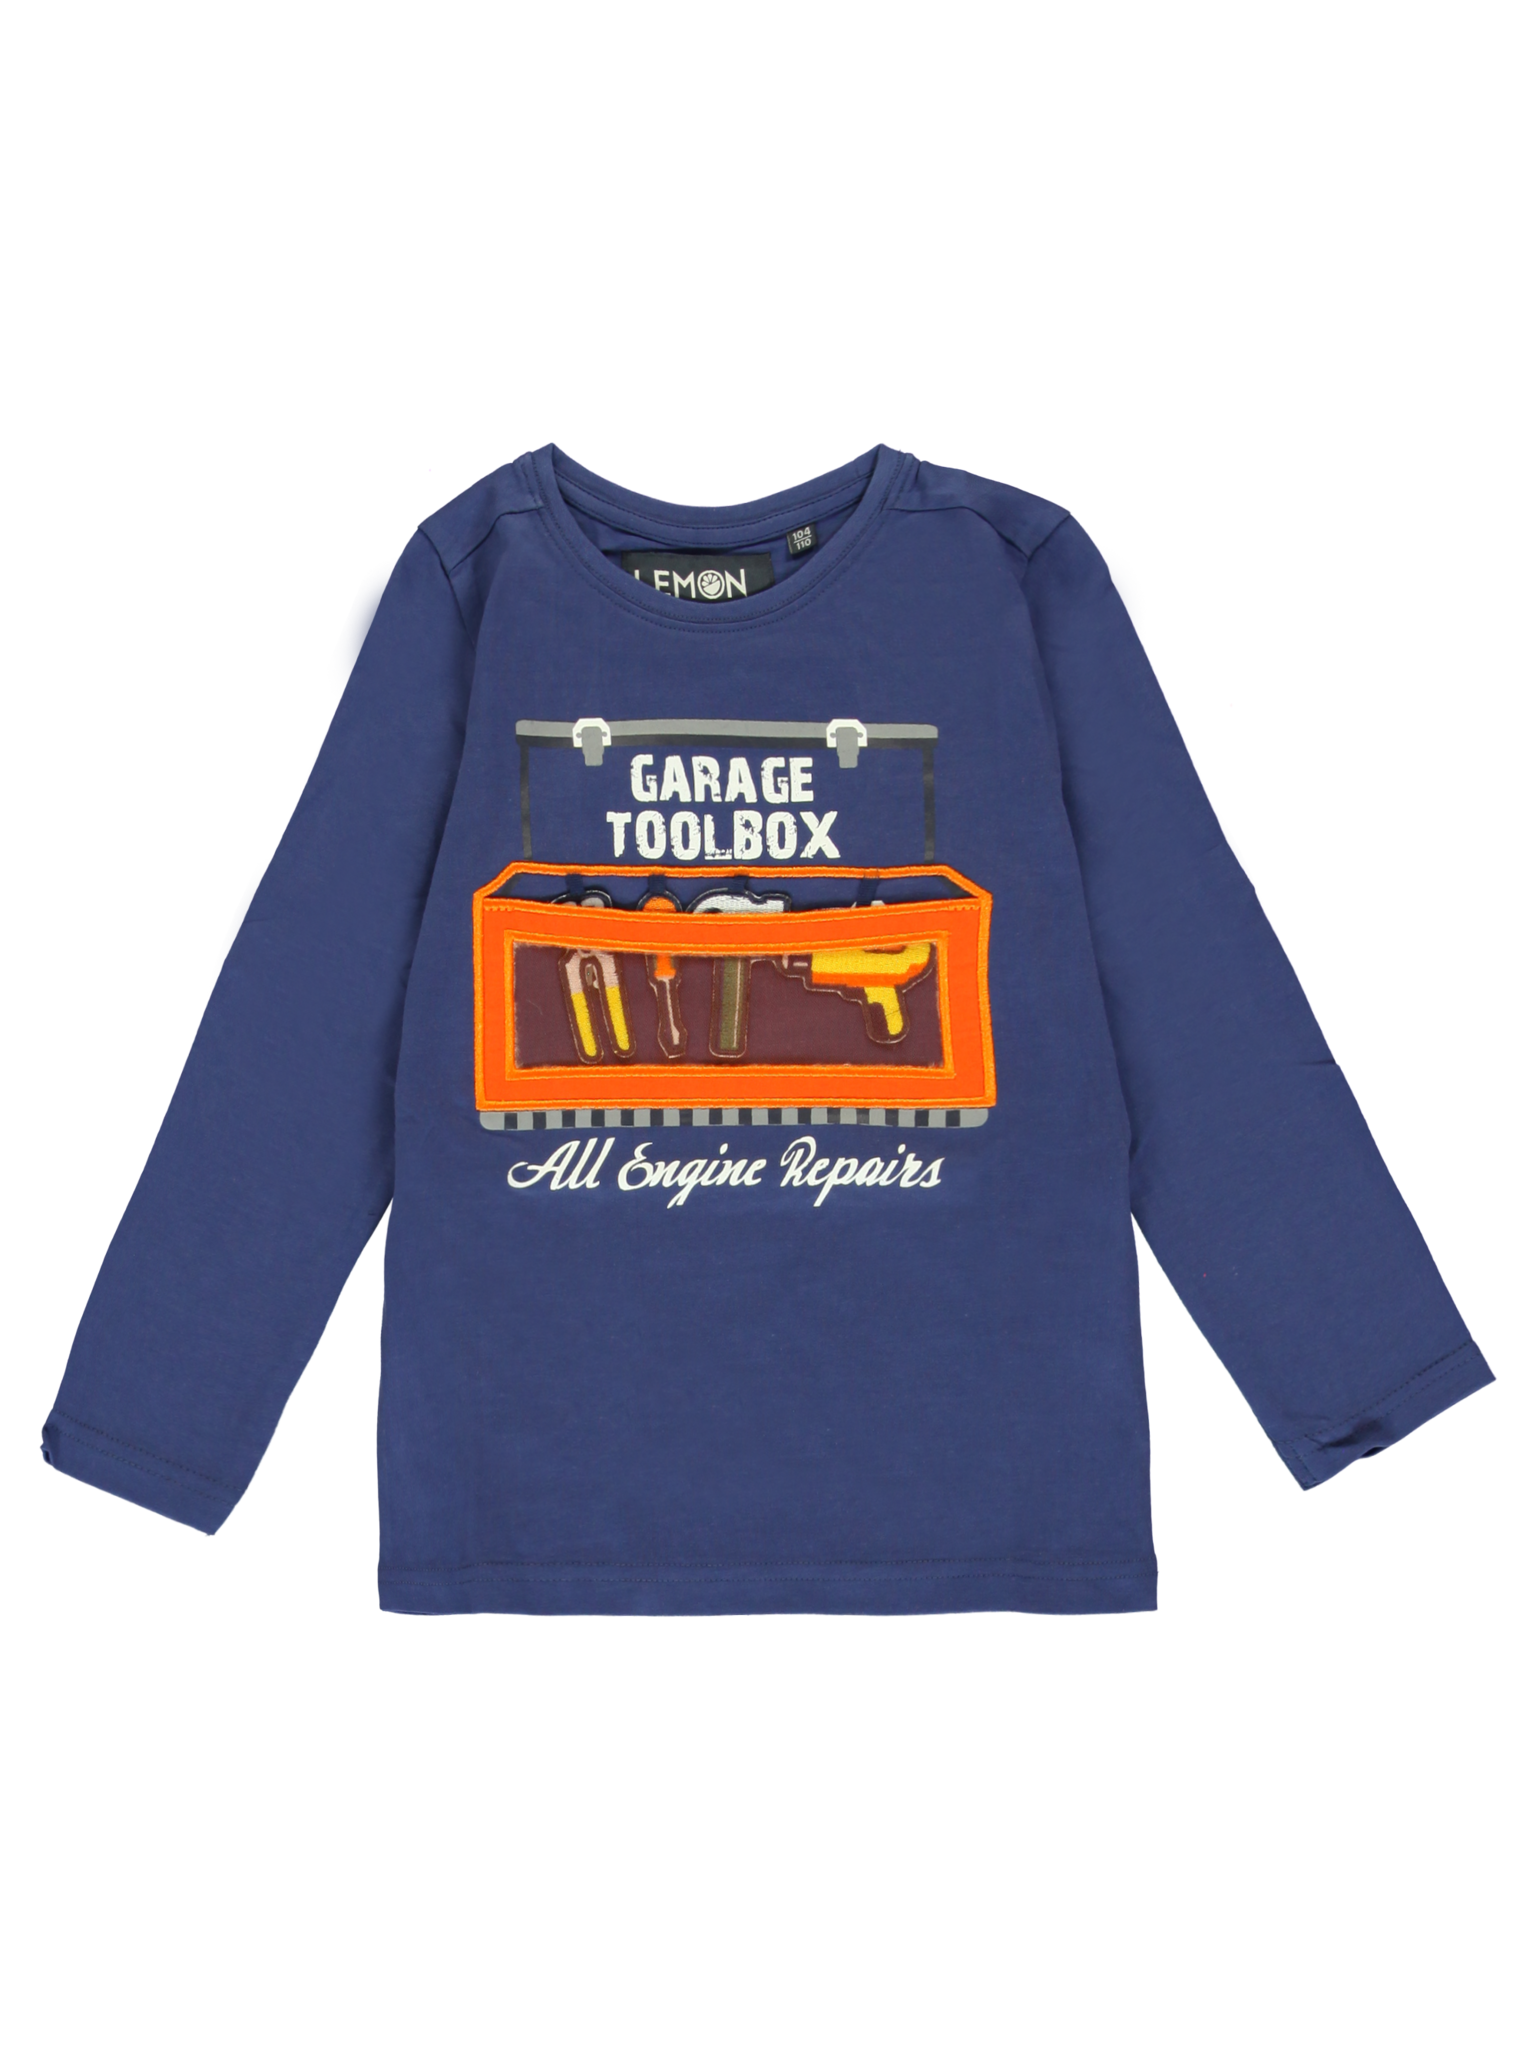 All Brands | Winterproducts Small Boys | T-shirt | 12 pcs/box